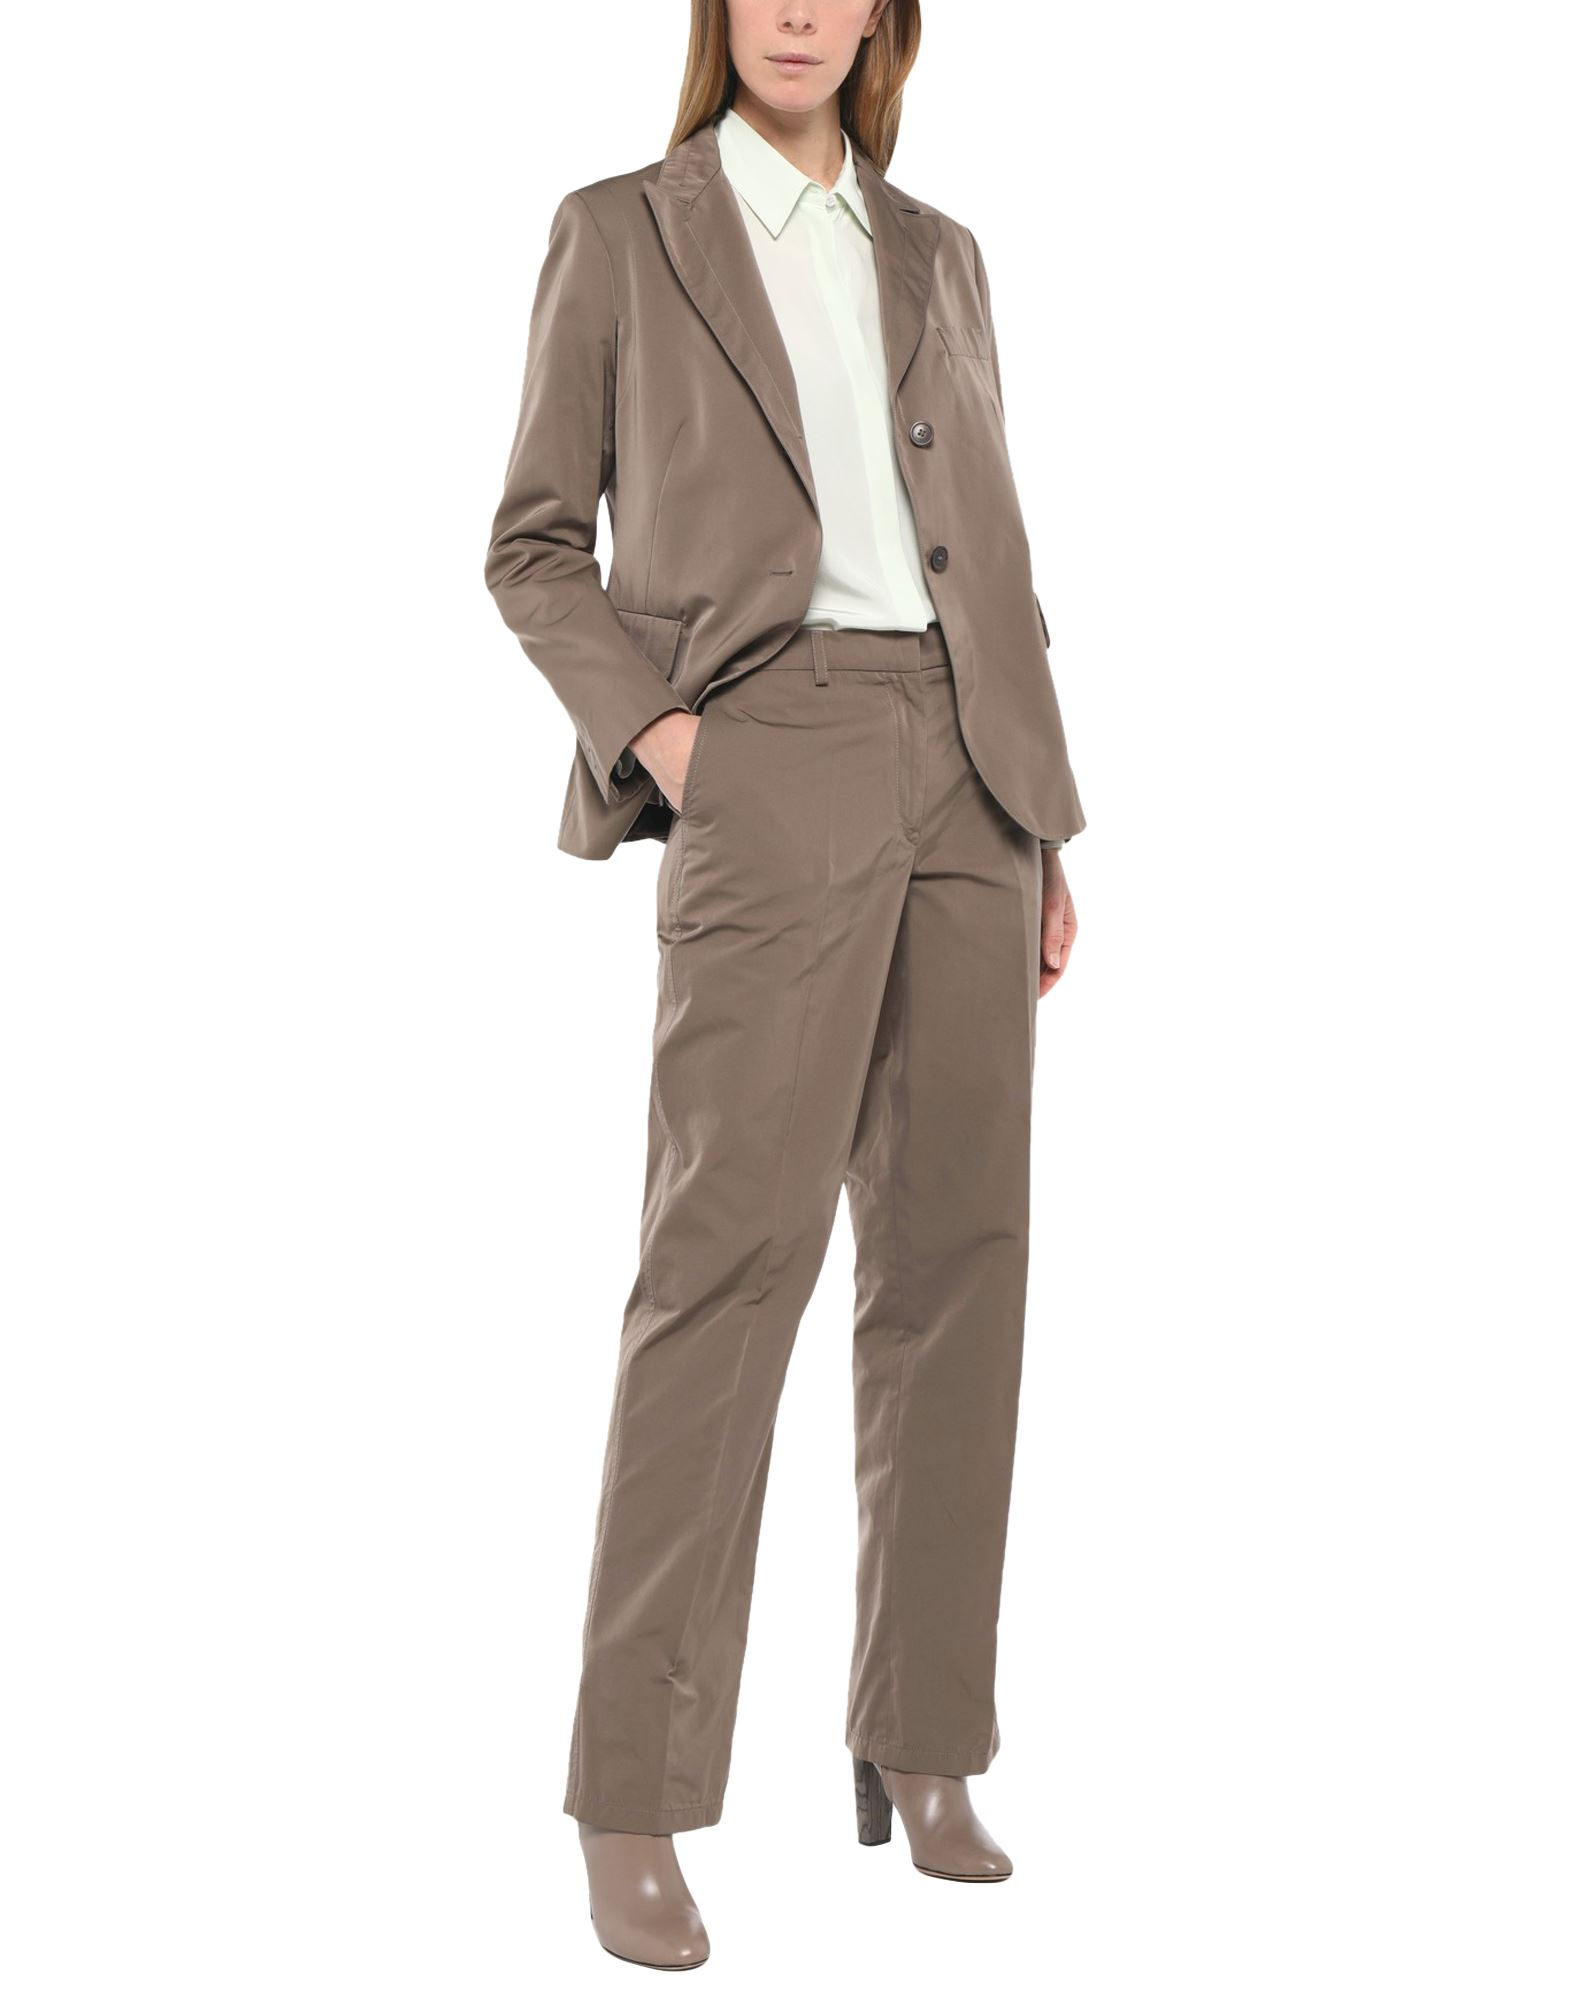 JIL SANDER Women\\\'s suits. satin, no appliqués, basic solid color, lapel collar, long sleeves, single-breasted, multipockets, low waisted, button, zip, single chest pocket, fully lined, dual back vents, straight-leg pants, hook-and-bar, zip, large sized. 68% Polyester, 32% Cotton